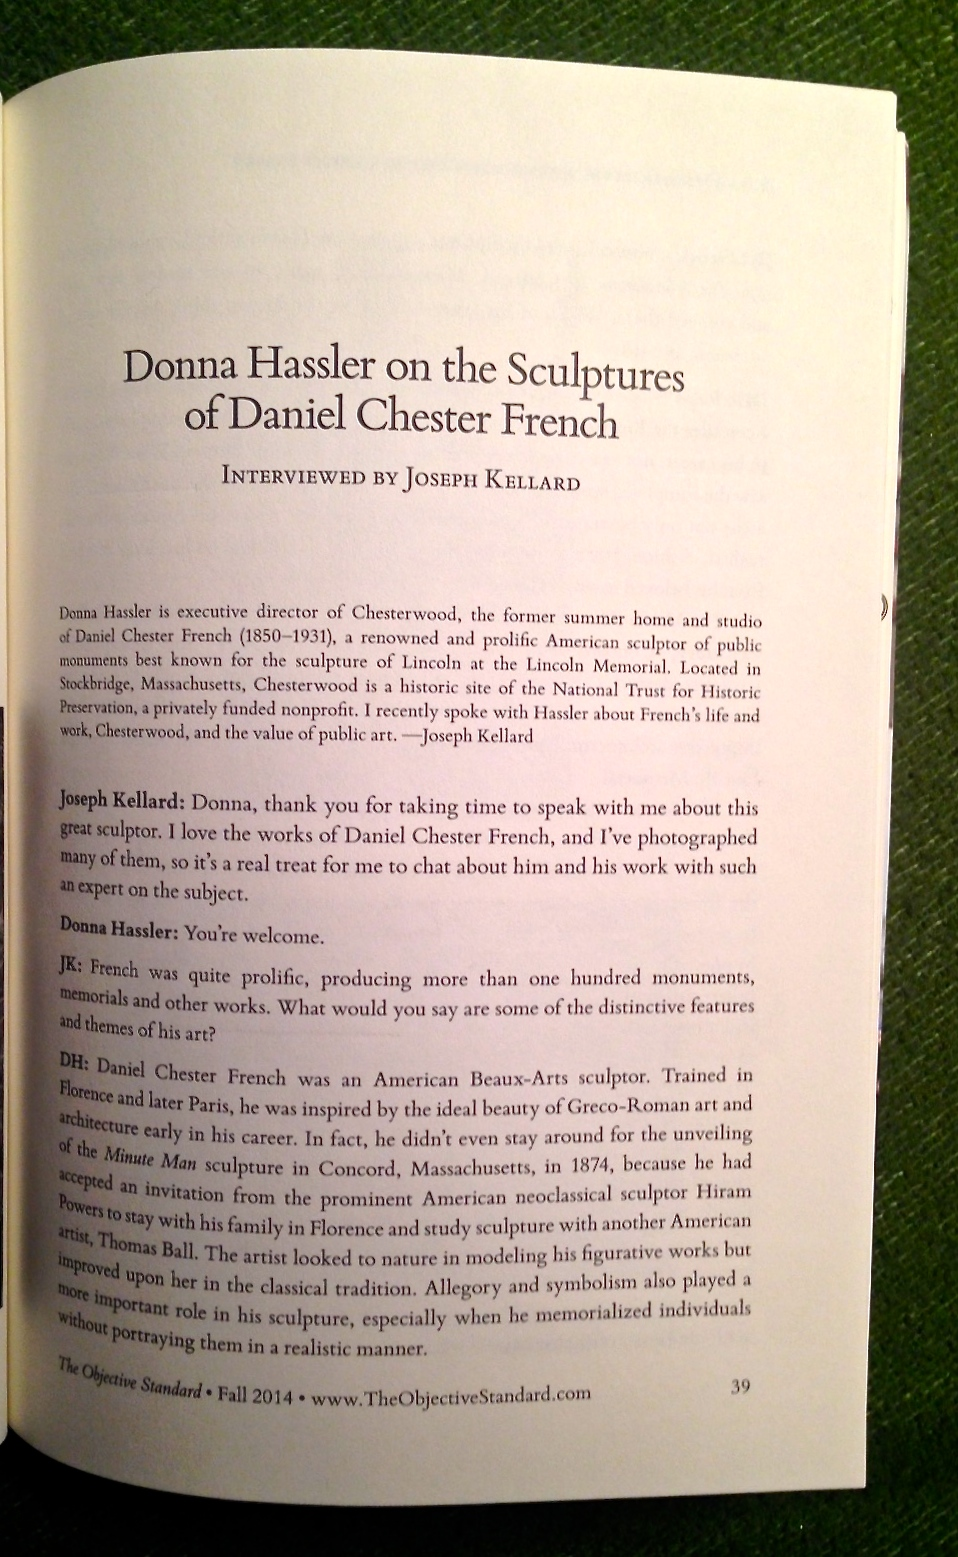 My Q&A with Donna Hassler, director of Chesterwood, the Massachusetts home of my favorite American sculptor Daniel Chester French, was printed in the fall edition of  The Objective Standard .